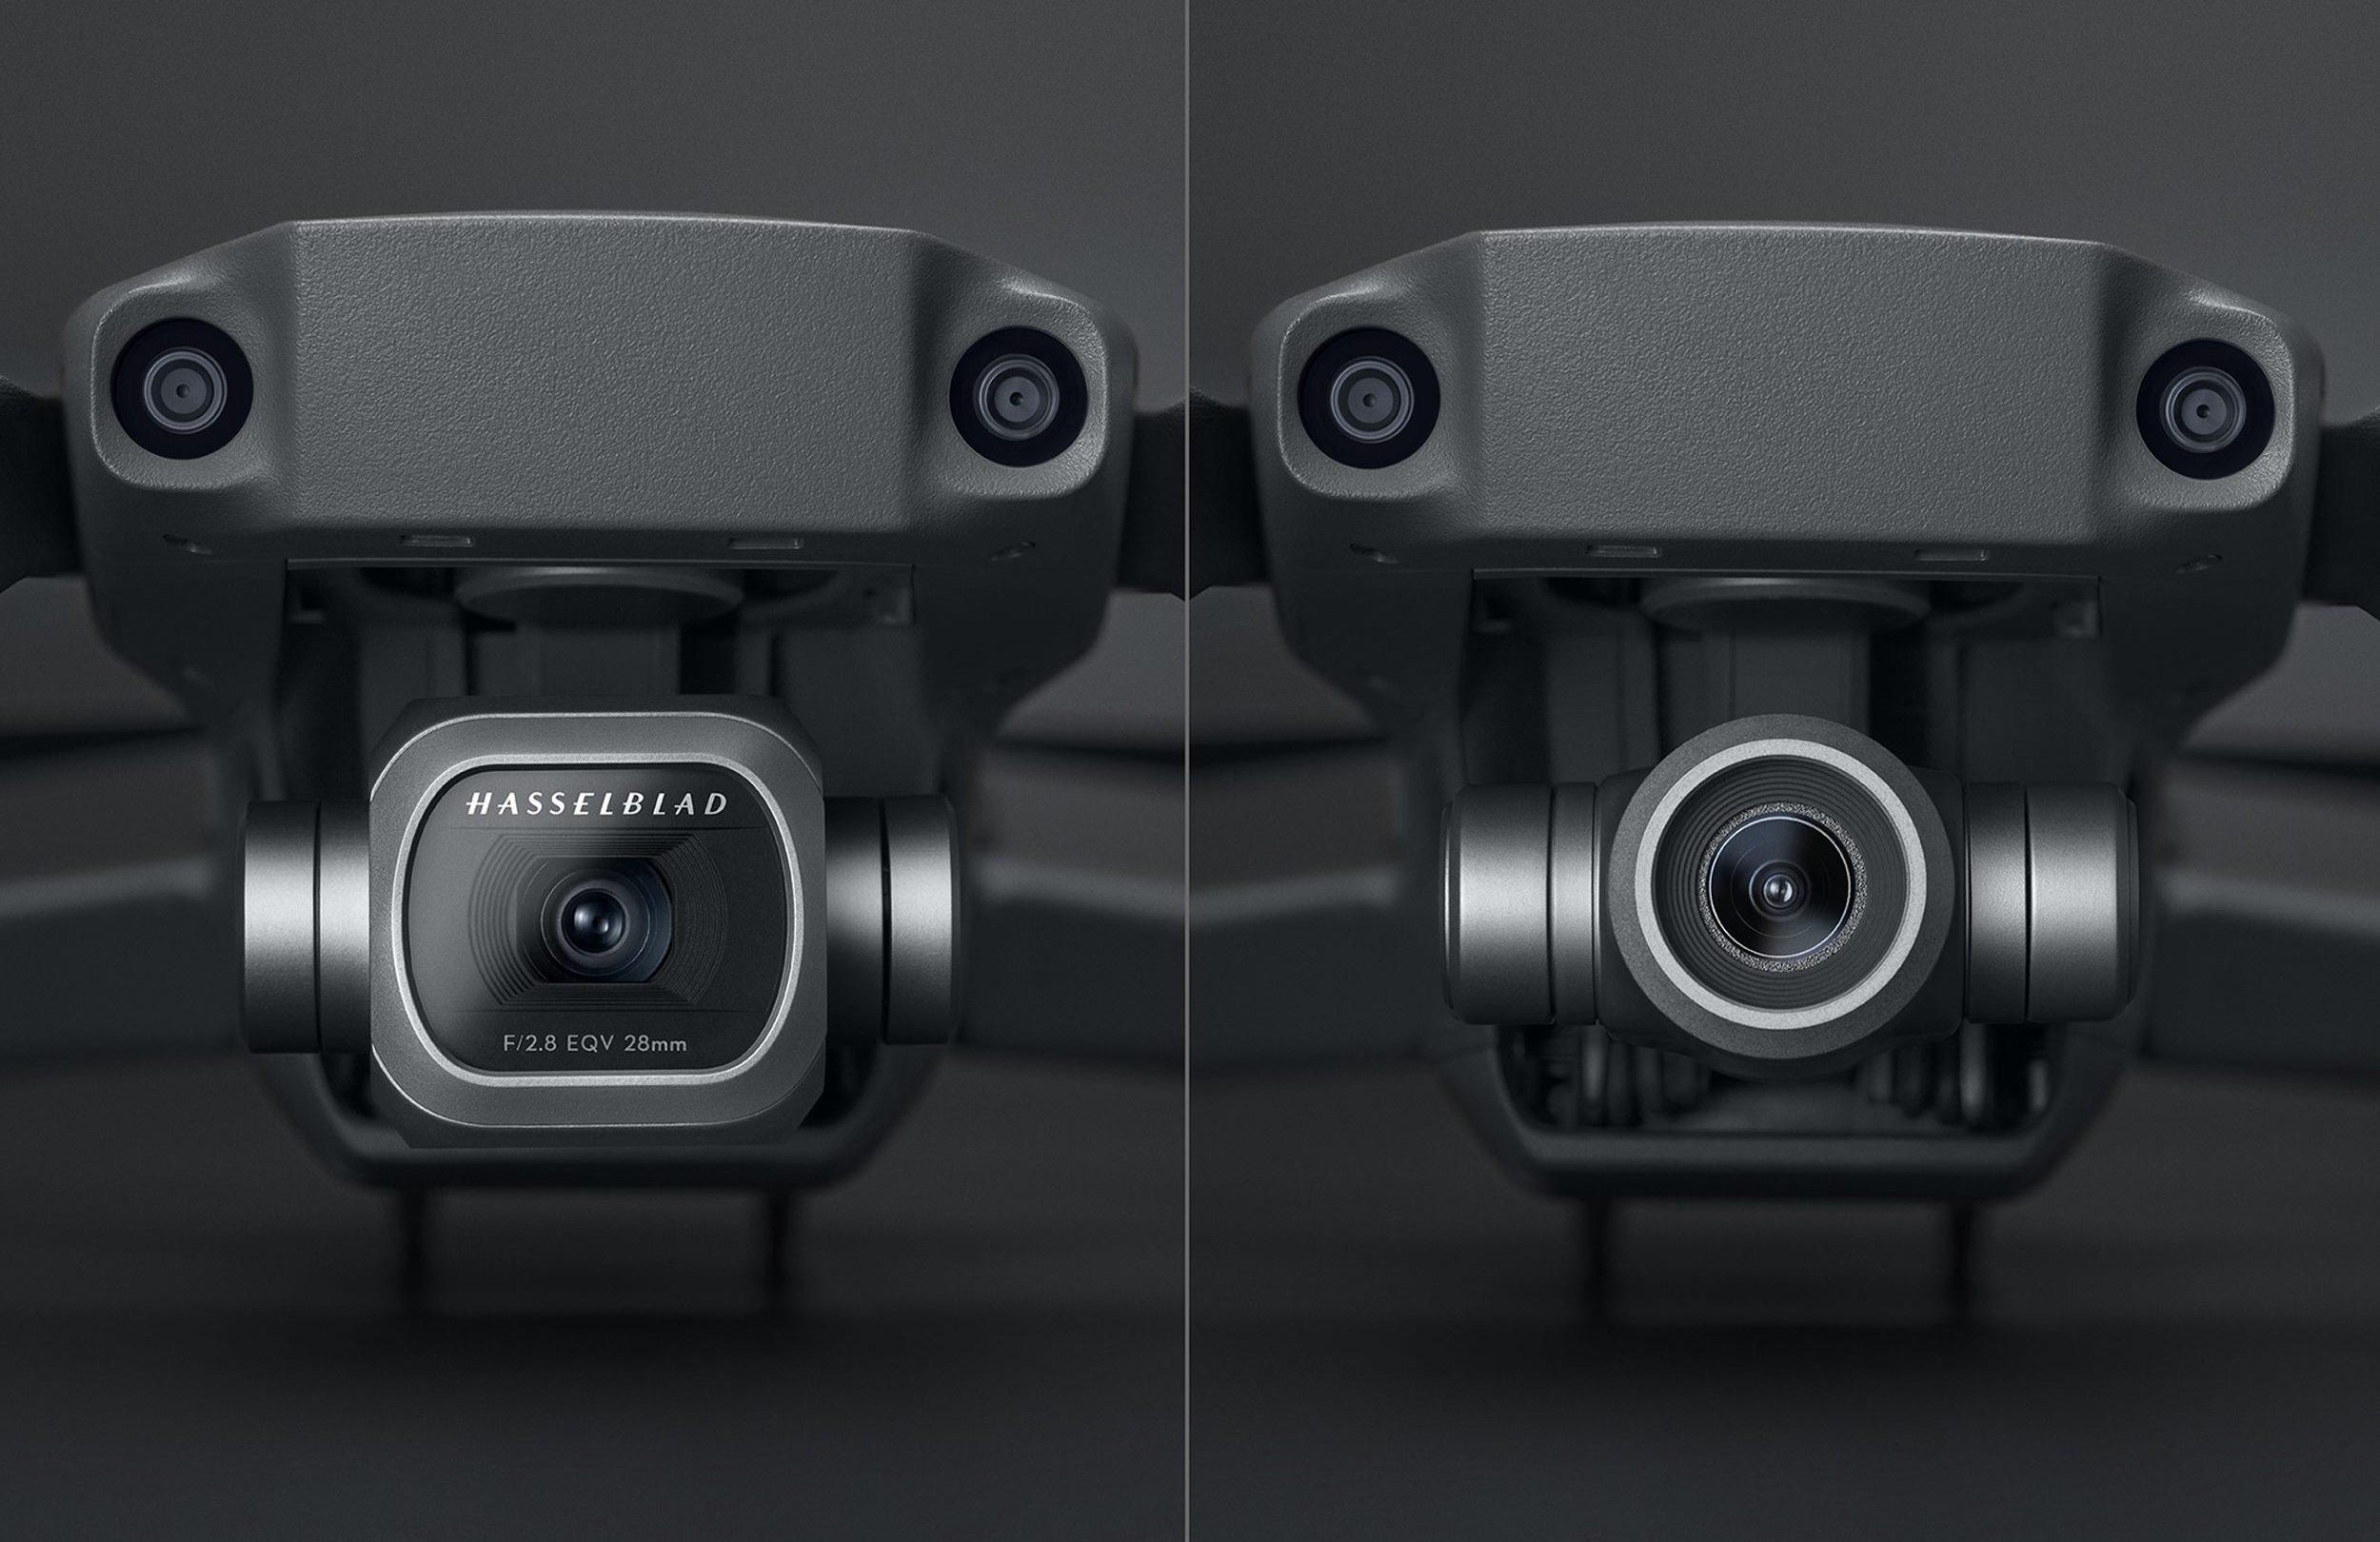 5838bed7487 As expected, DJI is targeting those wanting higher-quality video and photos  from their drones. To that end, the Mavic 2 Pro ...